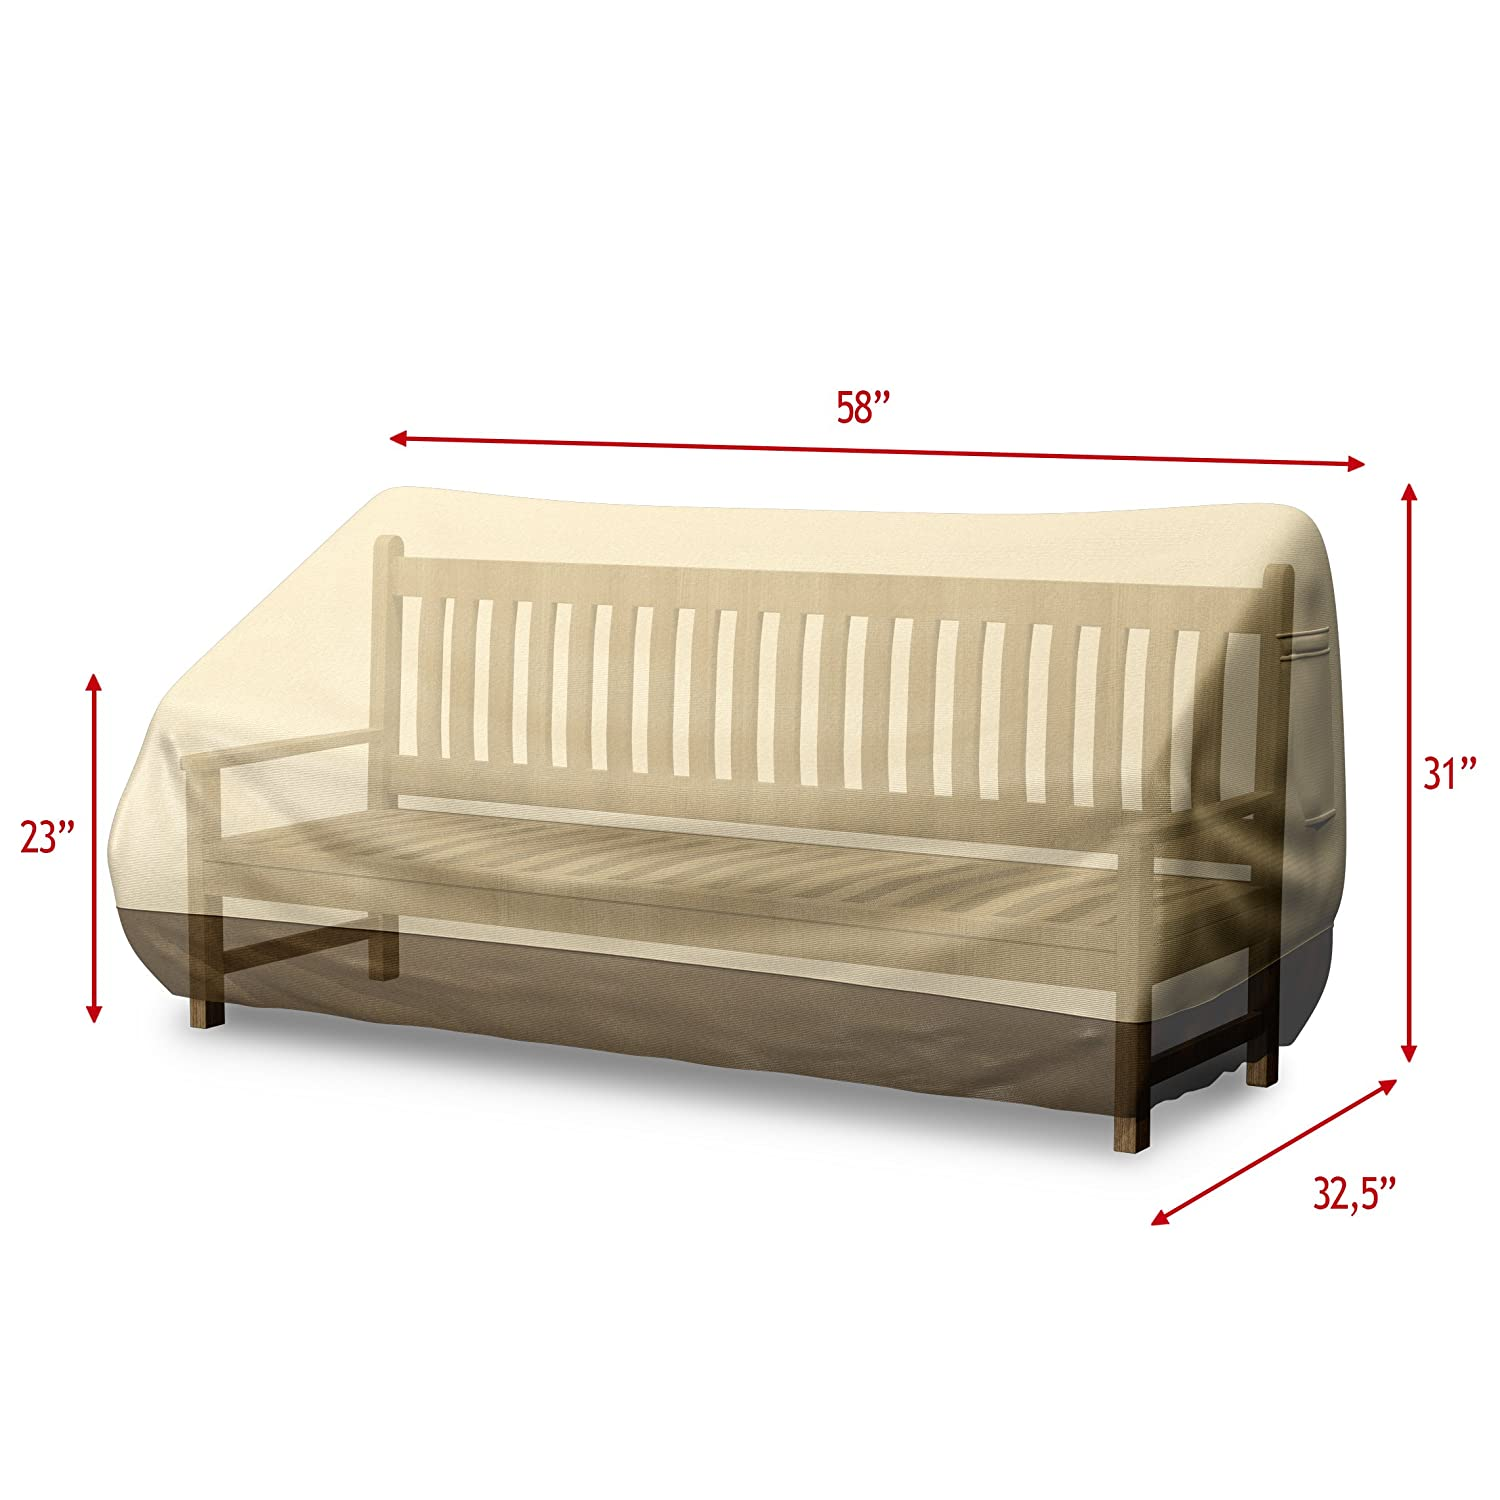 Home Complete Hc 4001 Outdoor Cover For Loveseat Sofa Bench 58